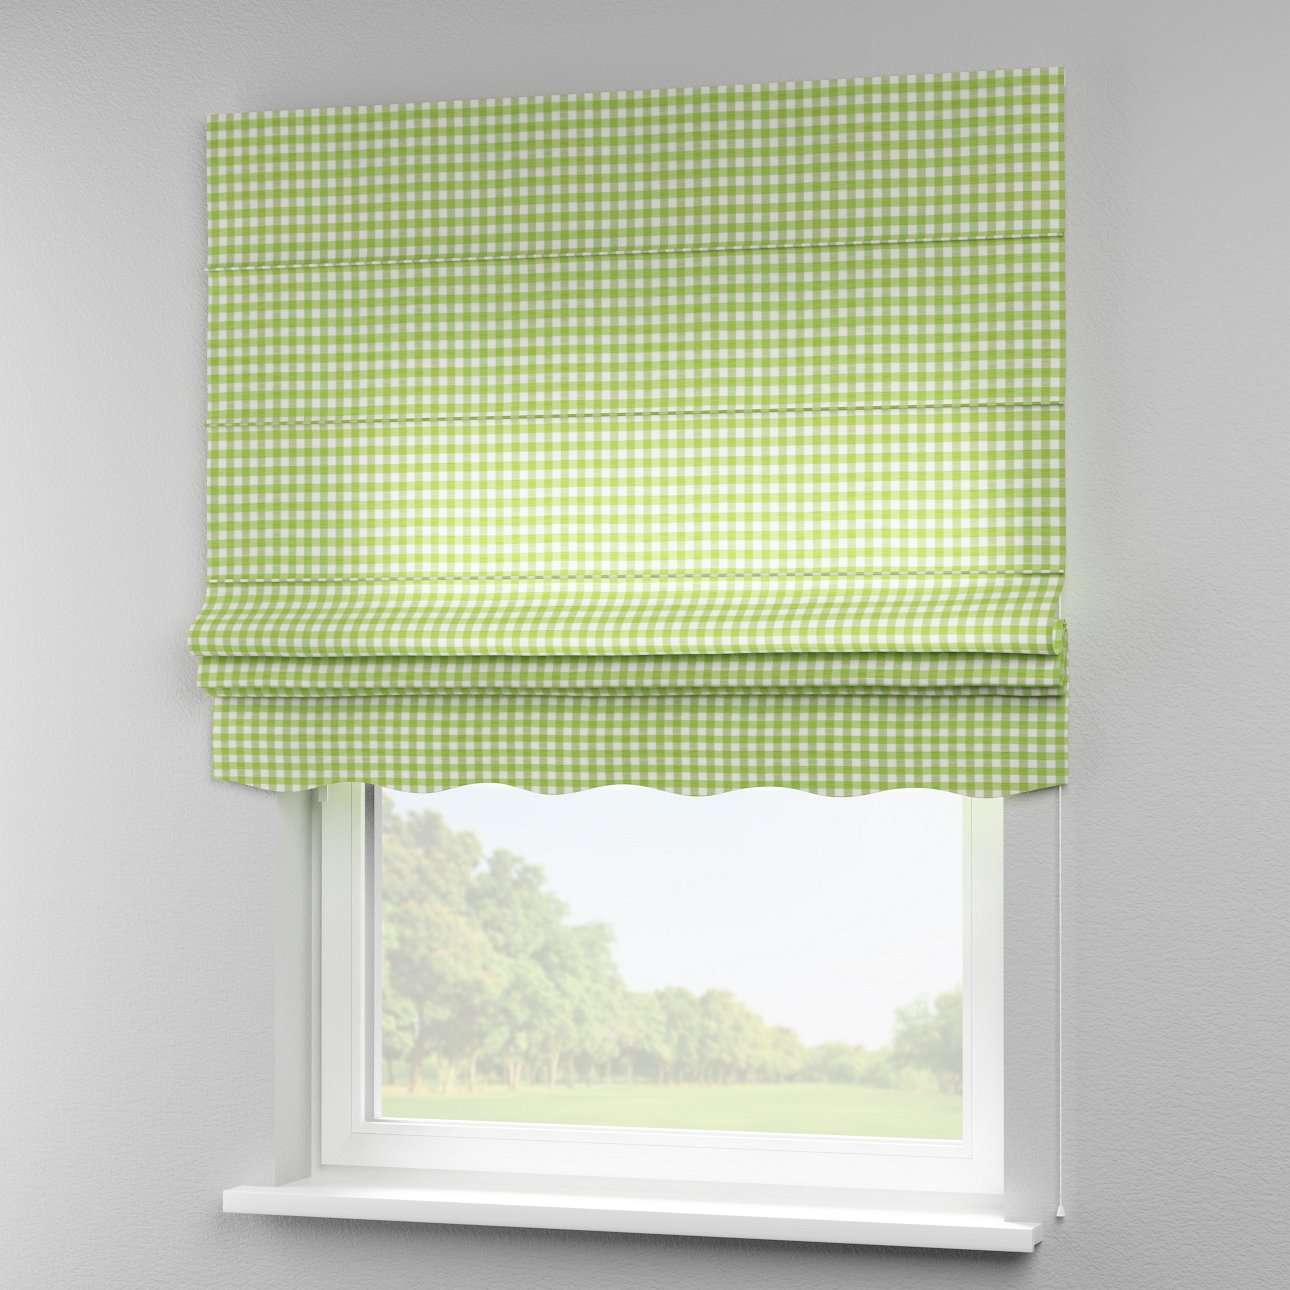 Florence roman blind  80 x 170 cm (31.5 x 67 inch) in collection Quadro, fabric: 136-34